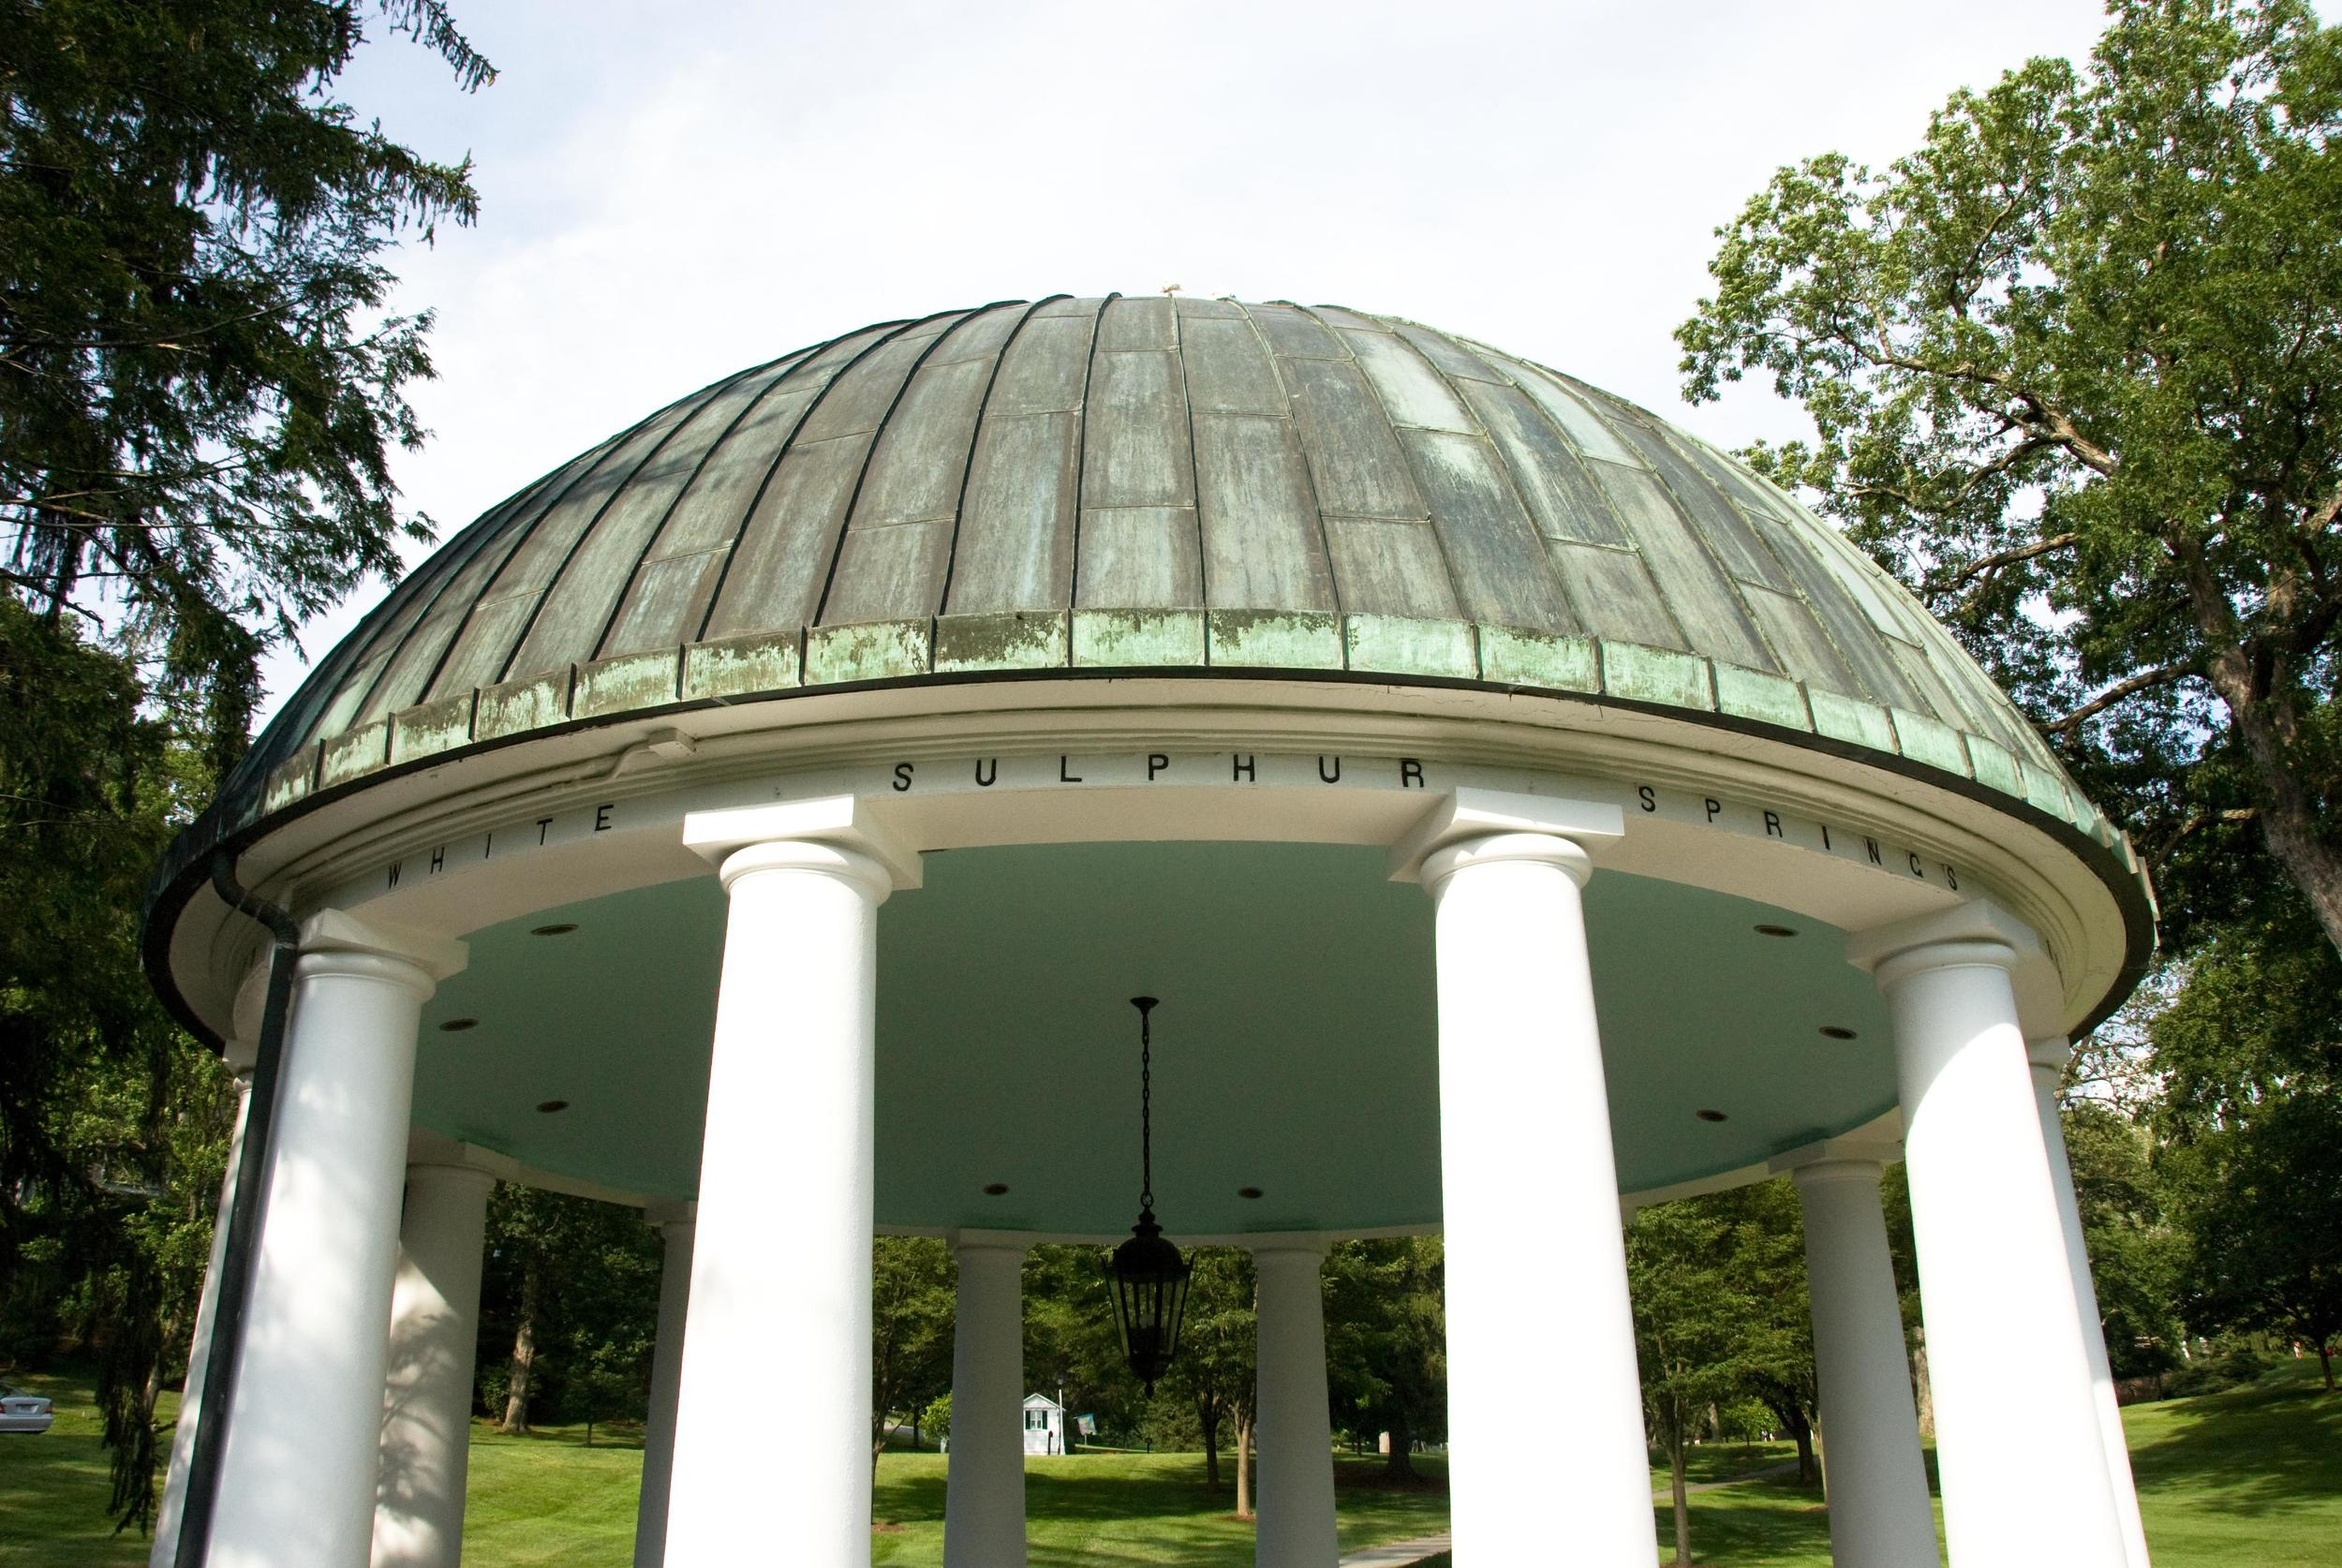 Spring_House_at_the_Greenbrier_22.jpg